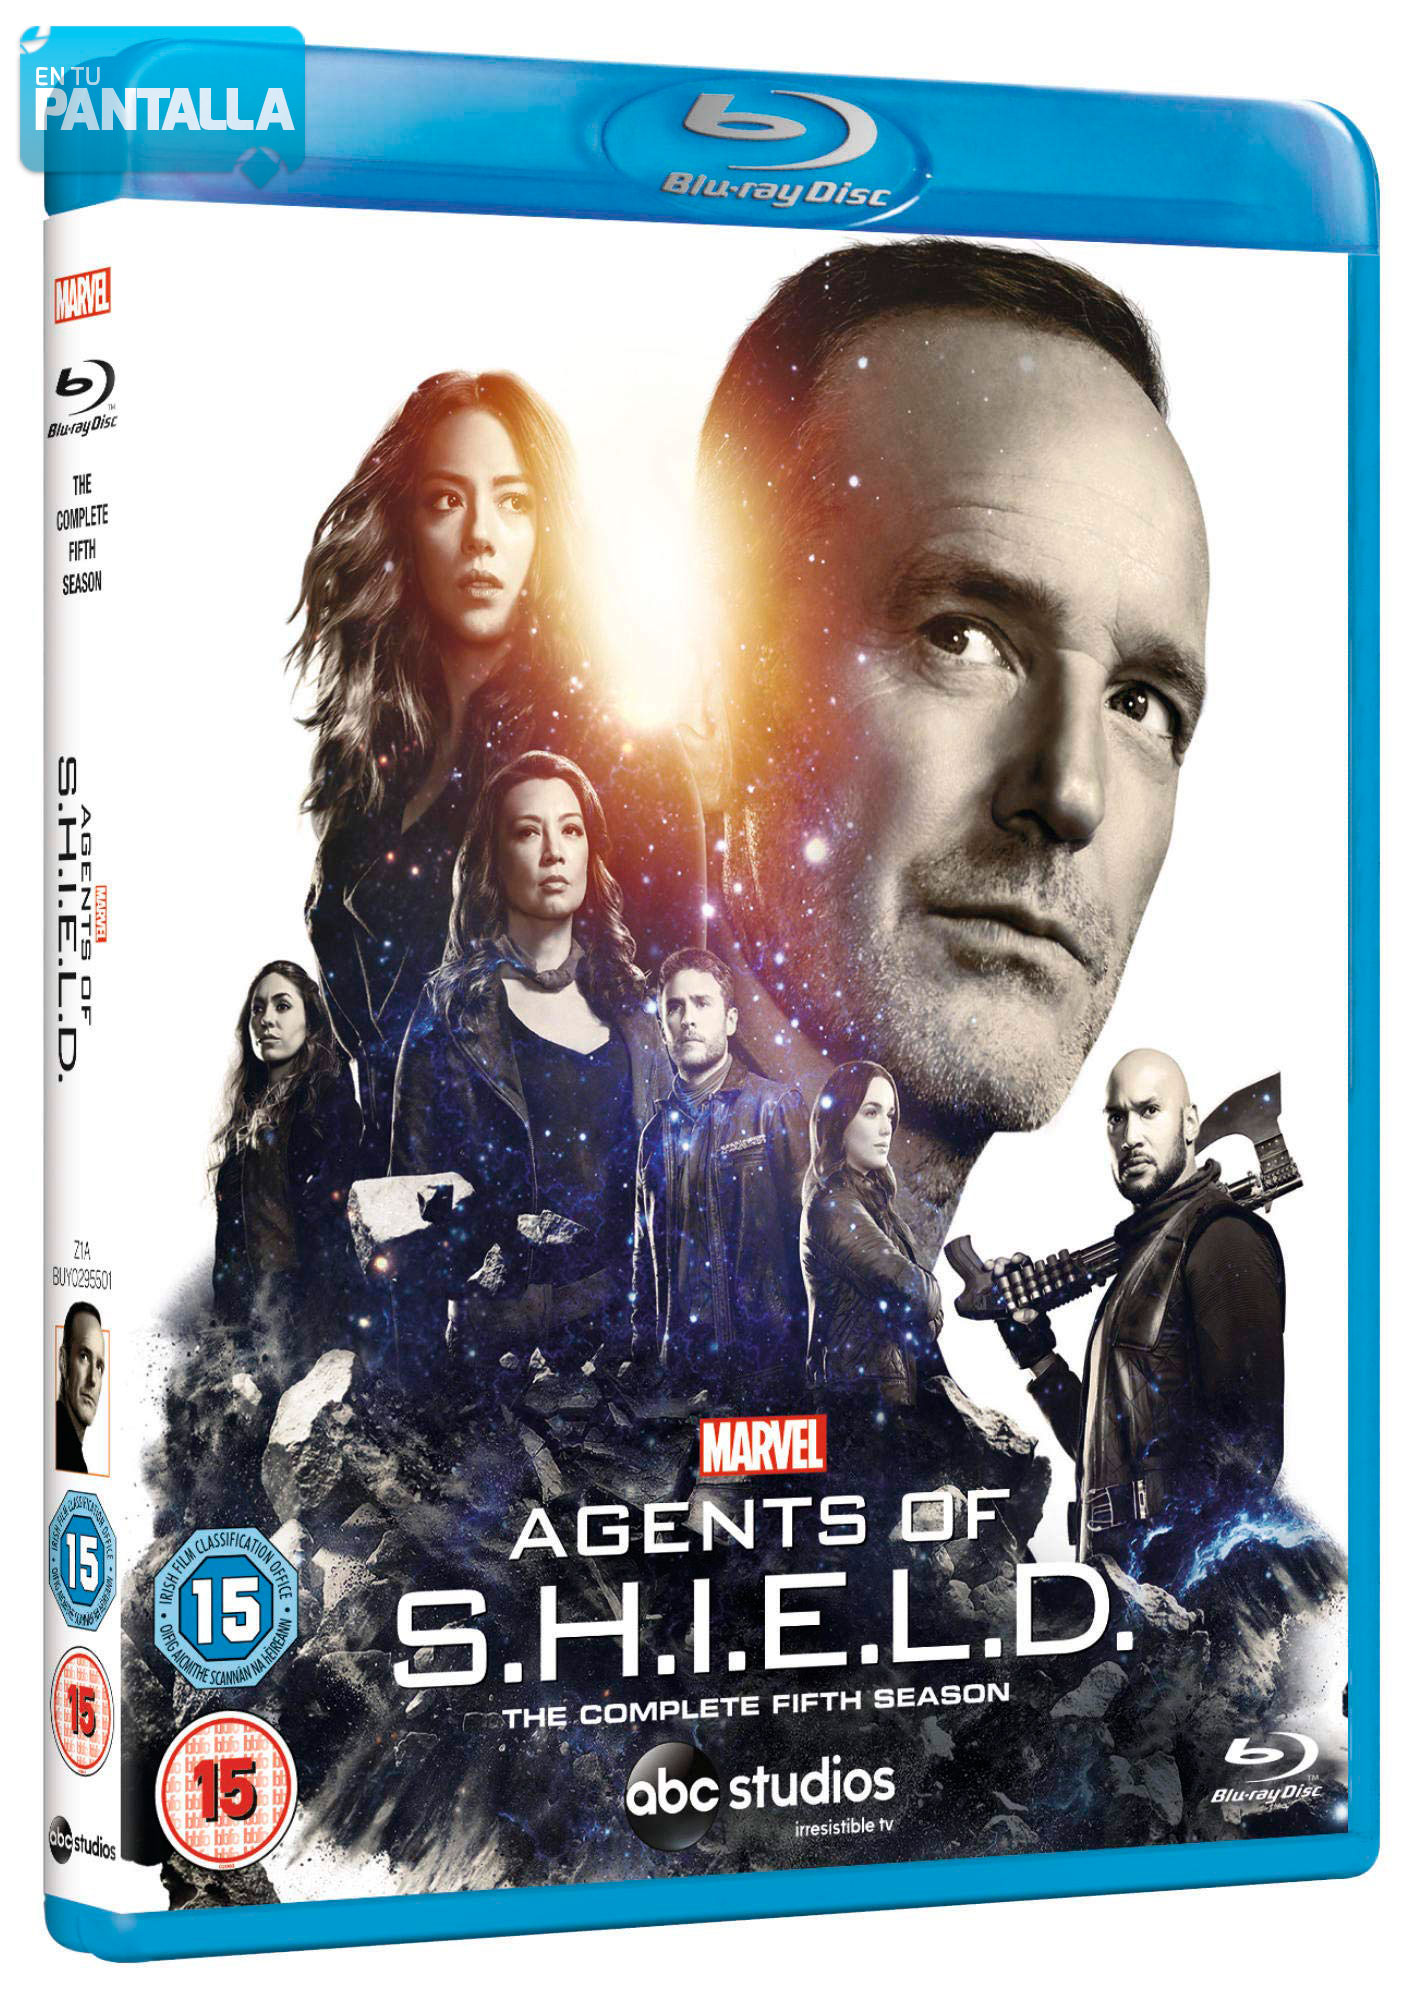 Agents of SHIELD Season 5 Blu-ray